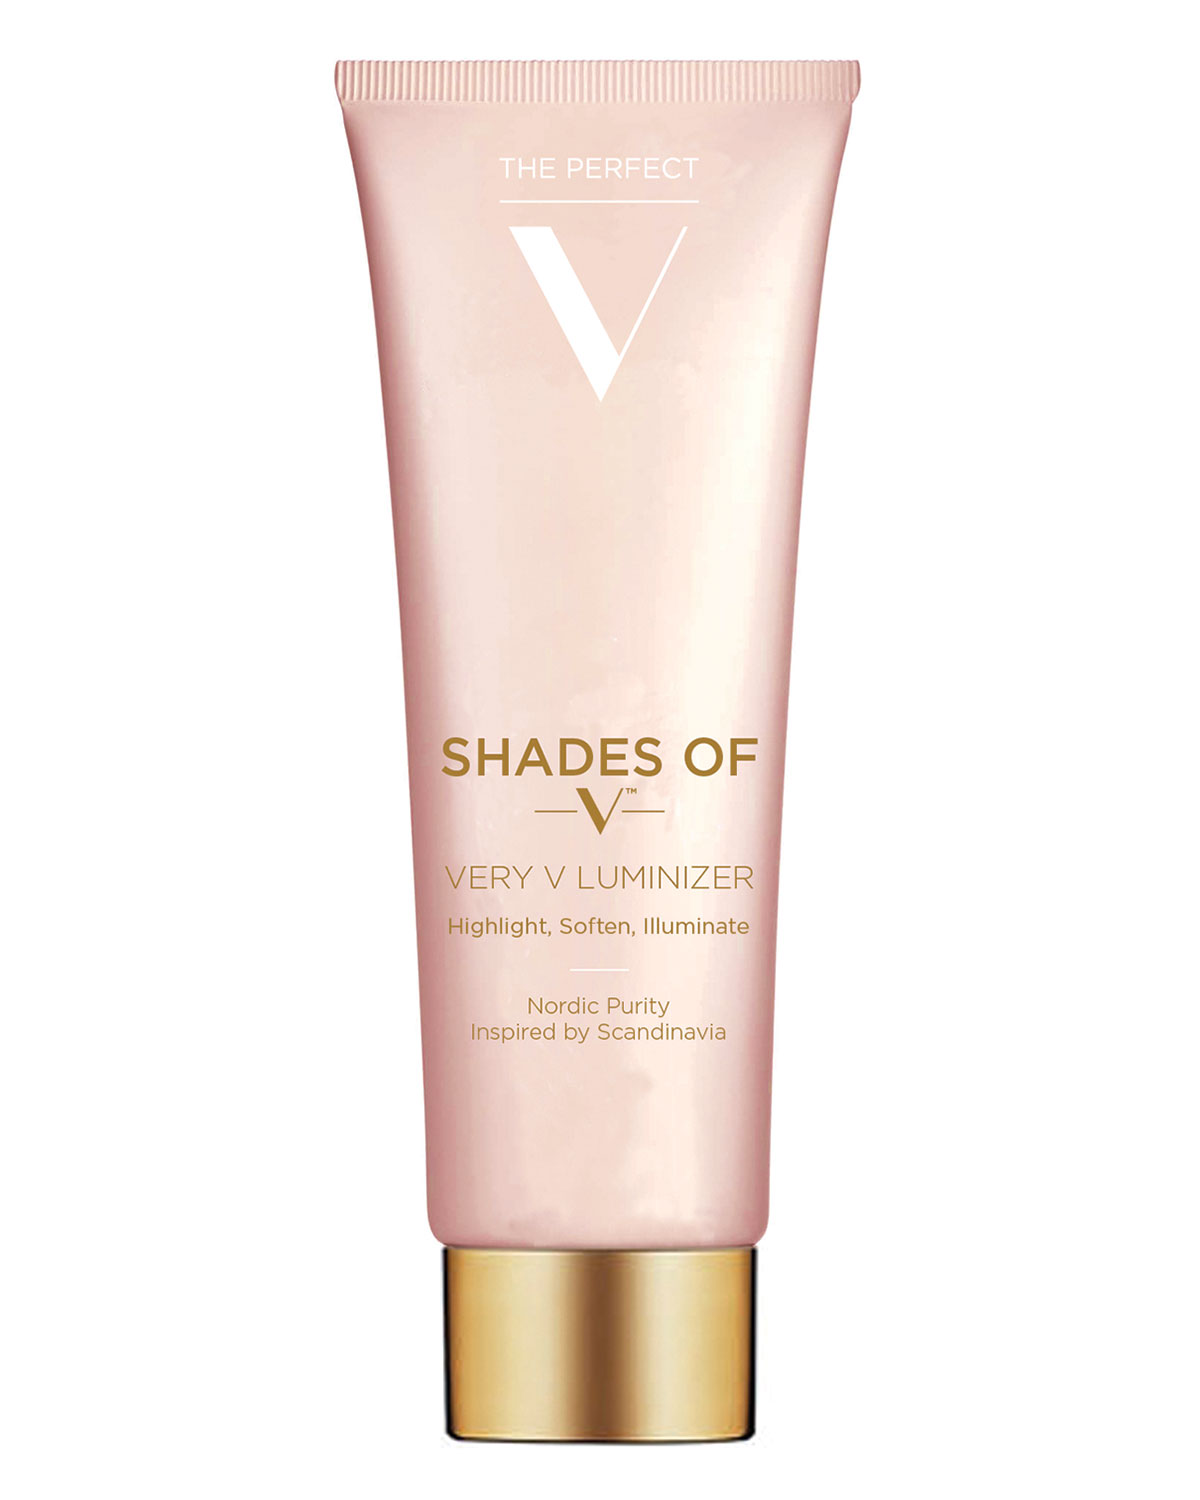 THE PERFECT V Shades Of V Luminizer, 1.7 Oz./ 50 Ml